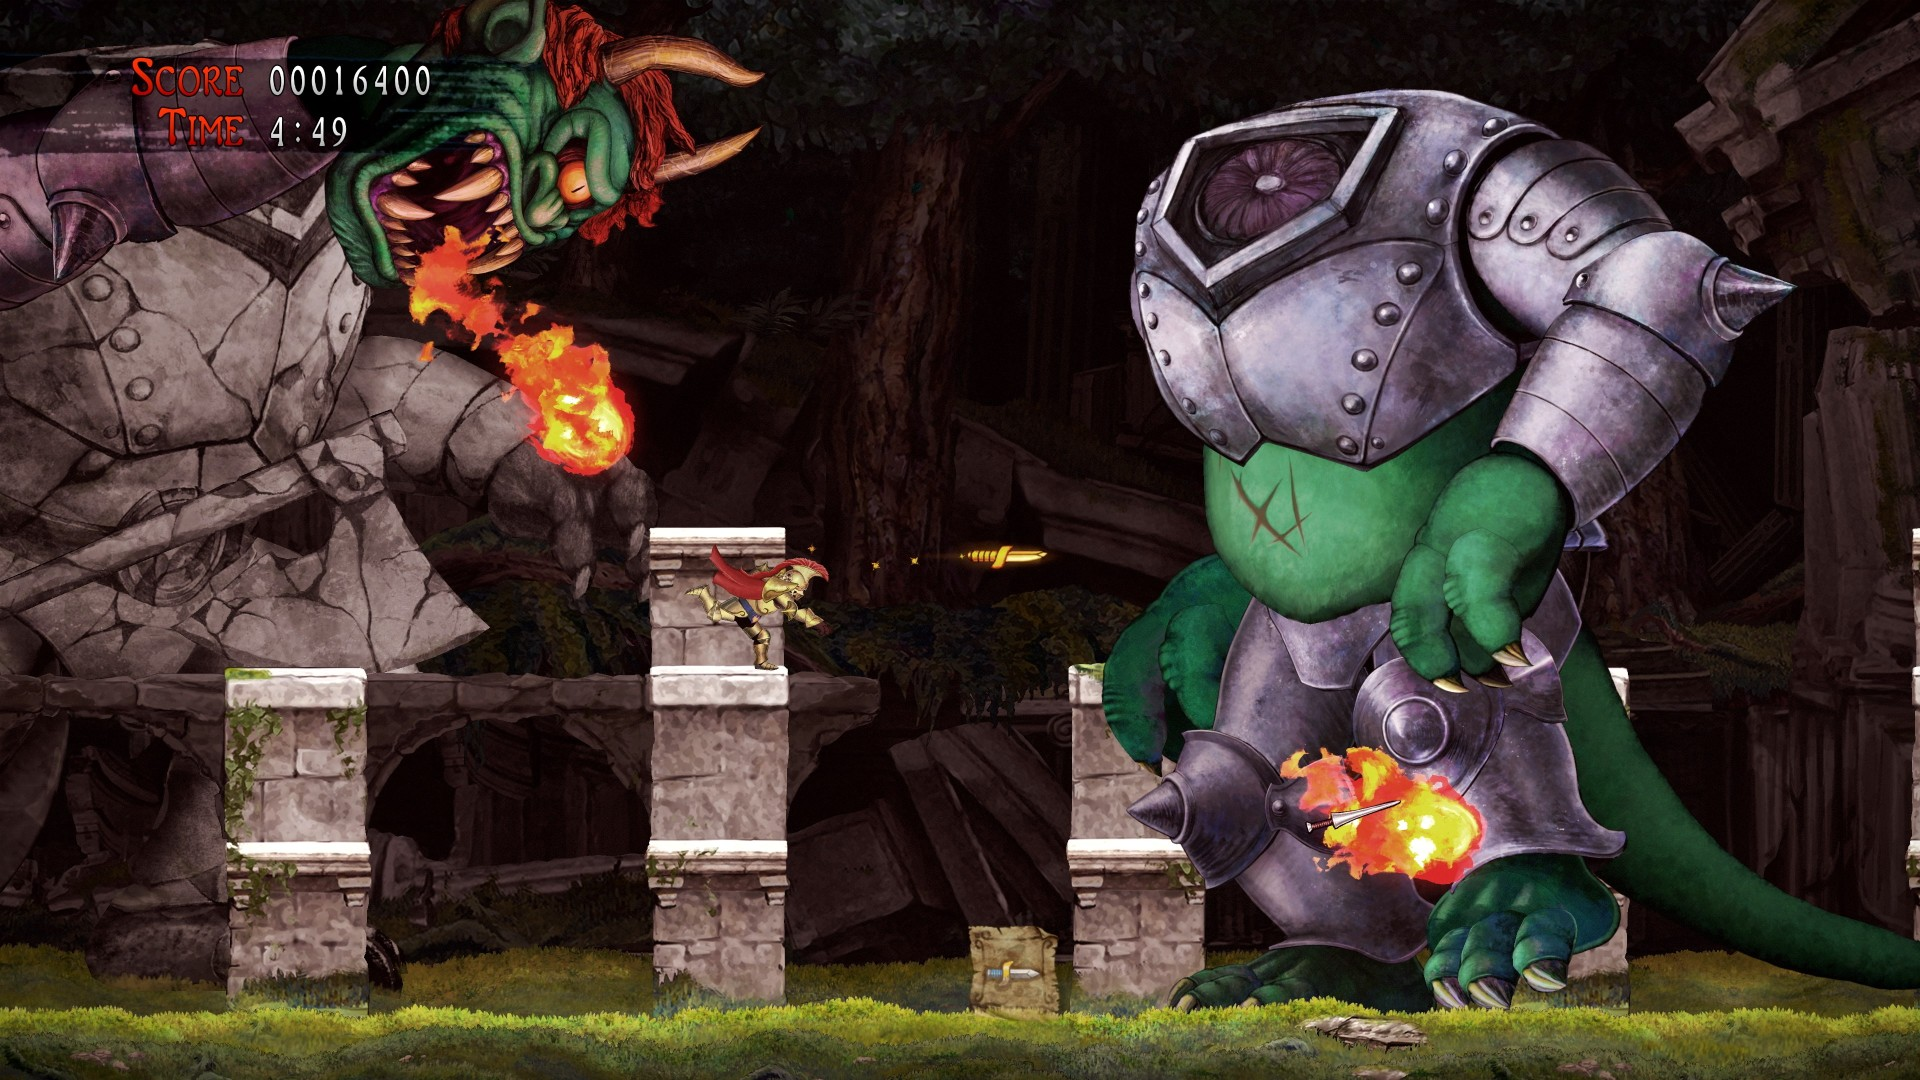 Ghosts 'n Goblins Resurrection – May 31